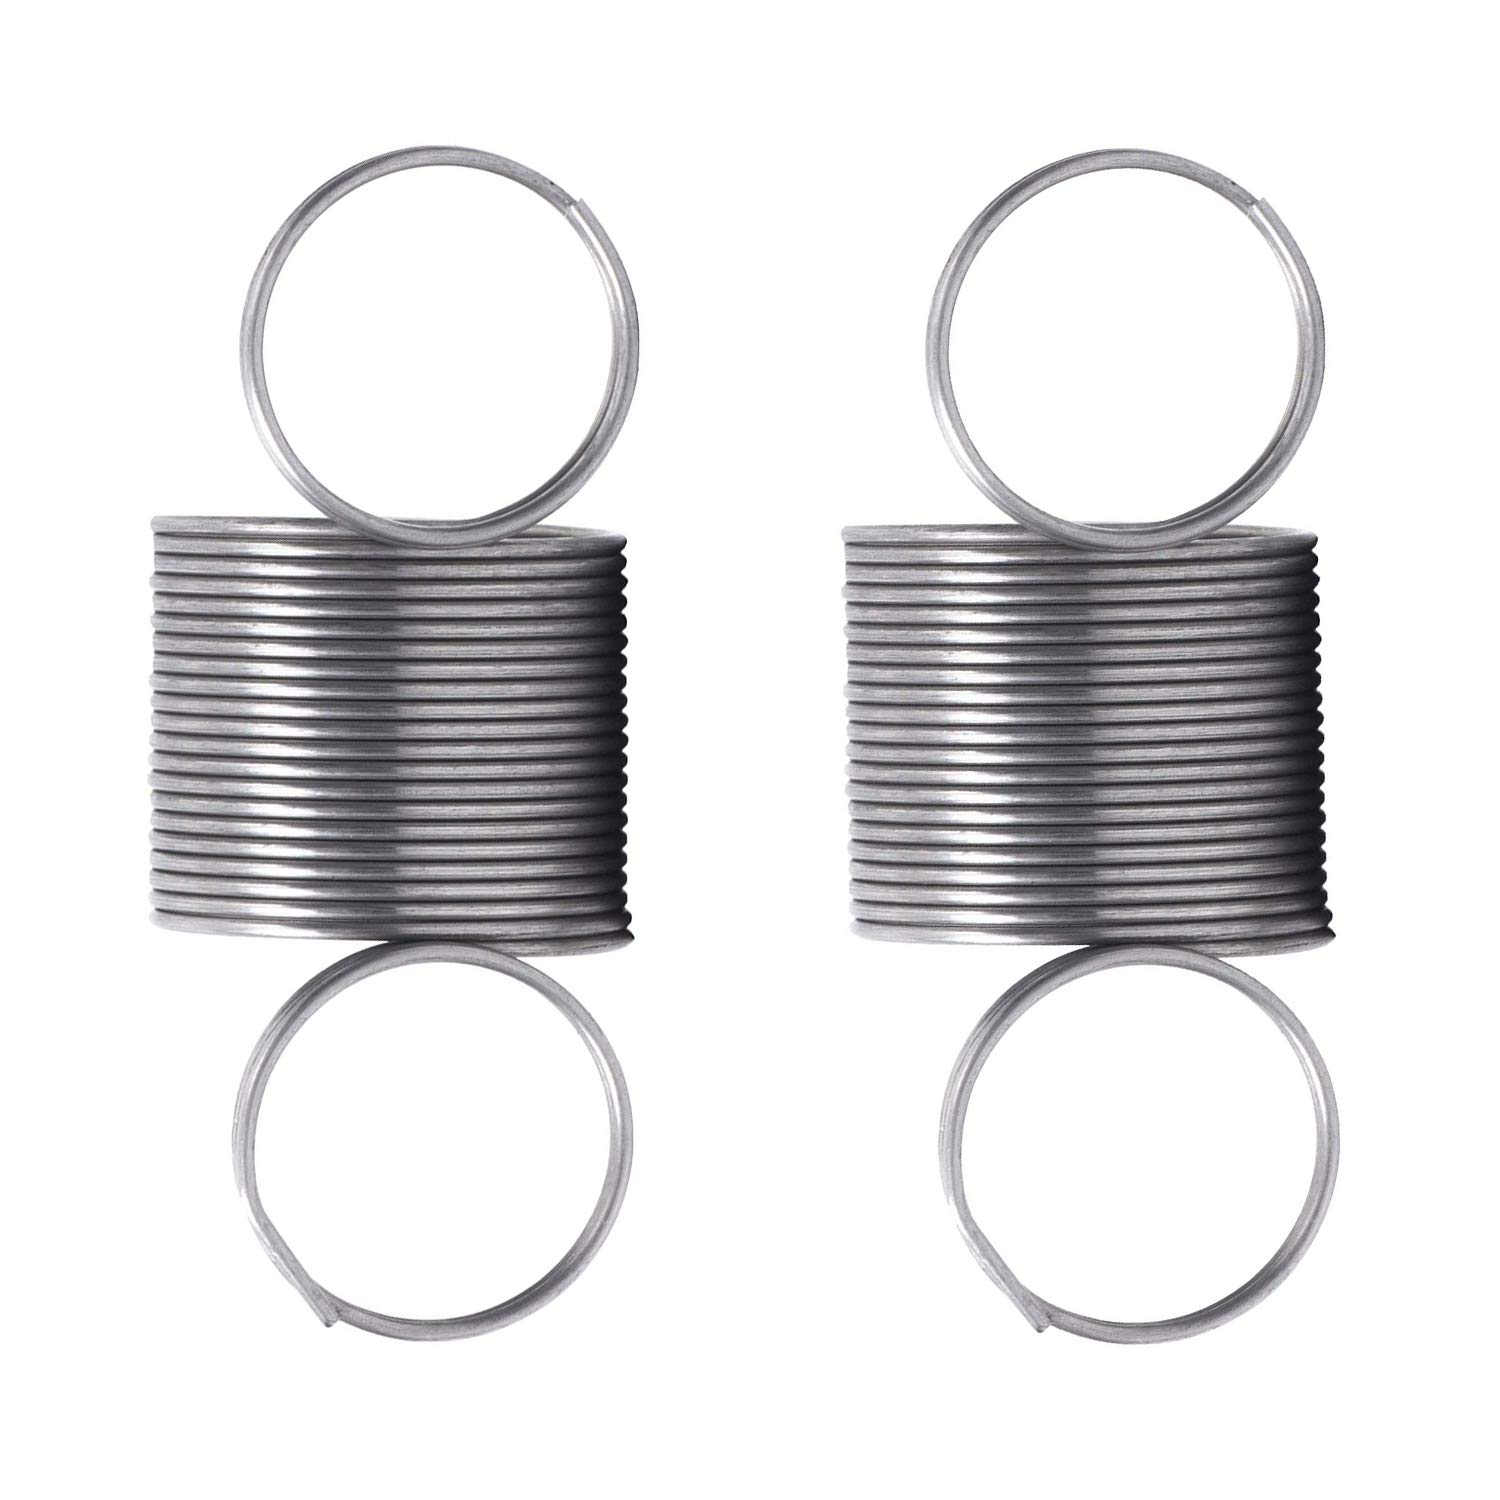 2pack W10400895 Washer Suspension Spring For Whirlpool Kenmore Washing Machine 1938554 AH3497596 EA3497596 PS3497596 LP22618